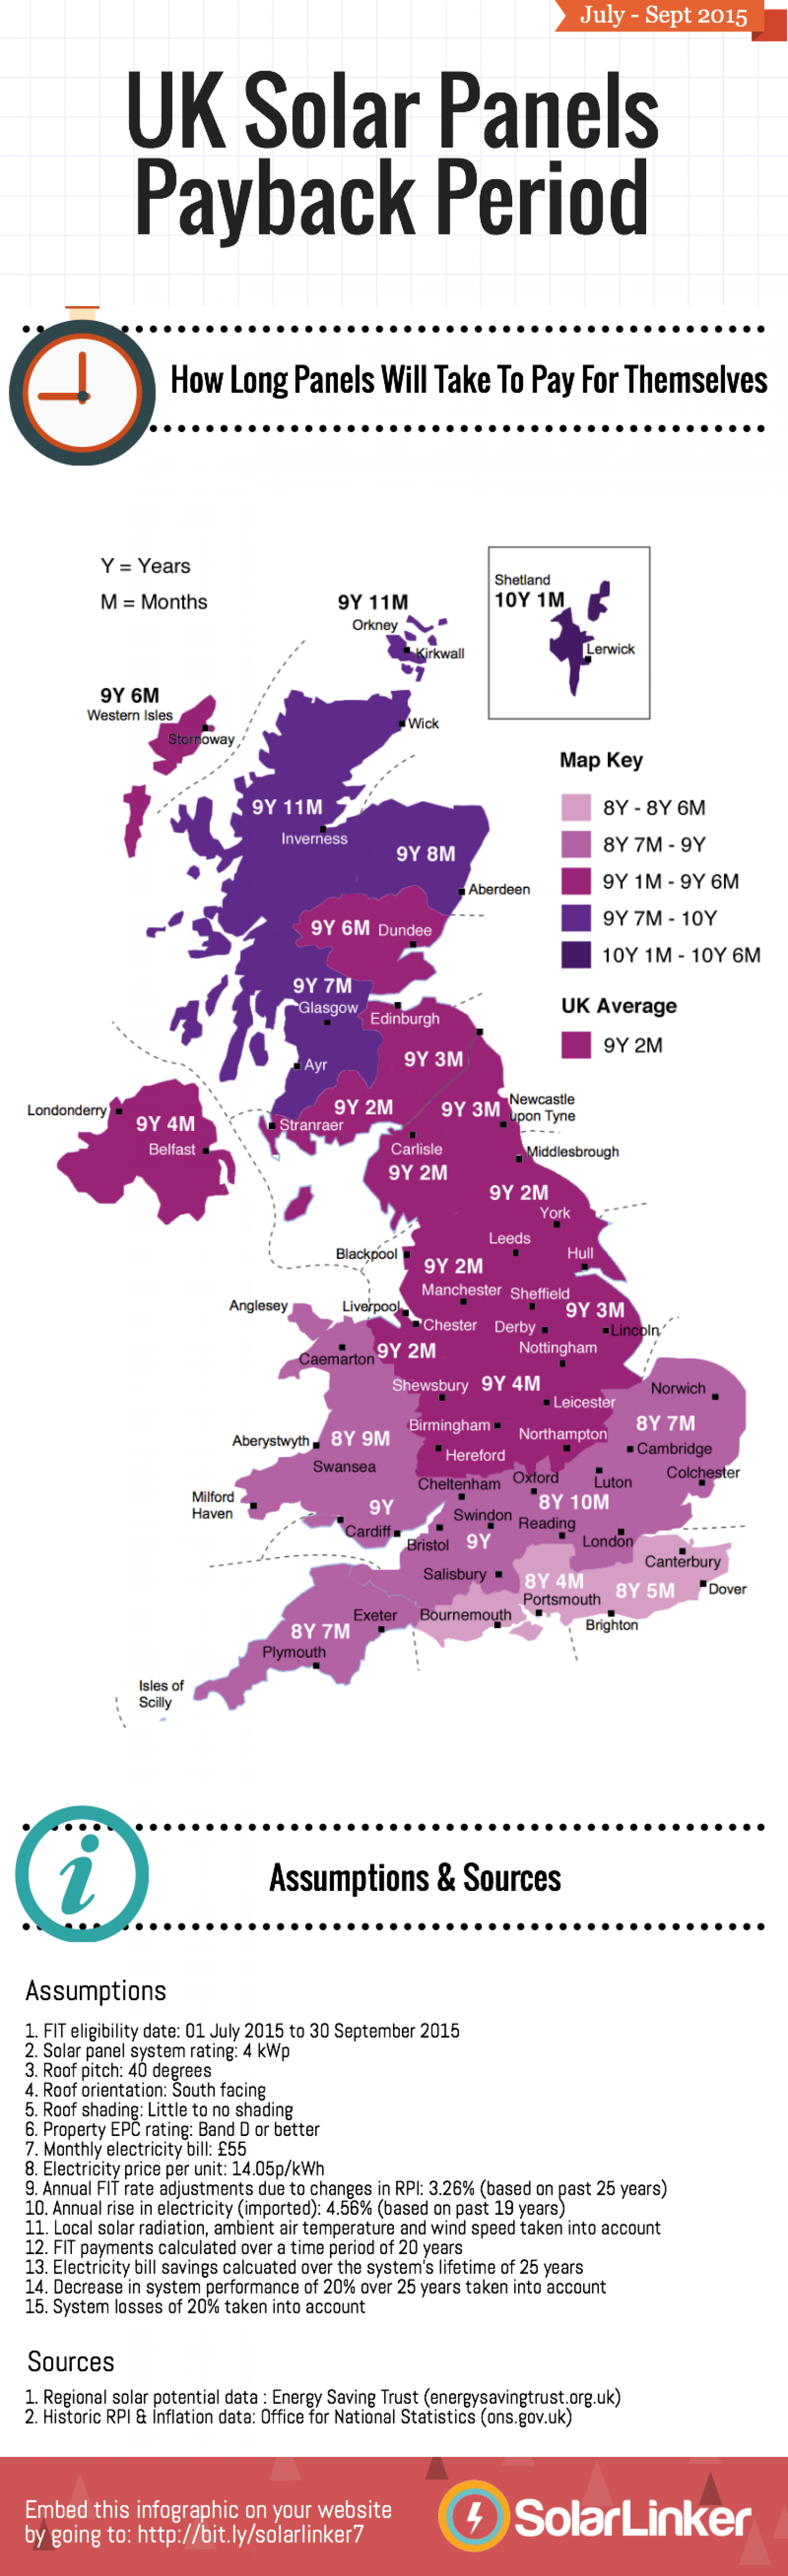 UK Solar PV Payback Period by Region Infographic